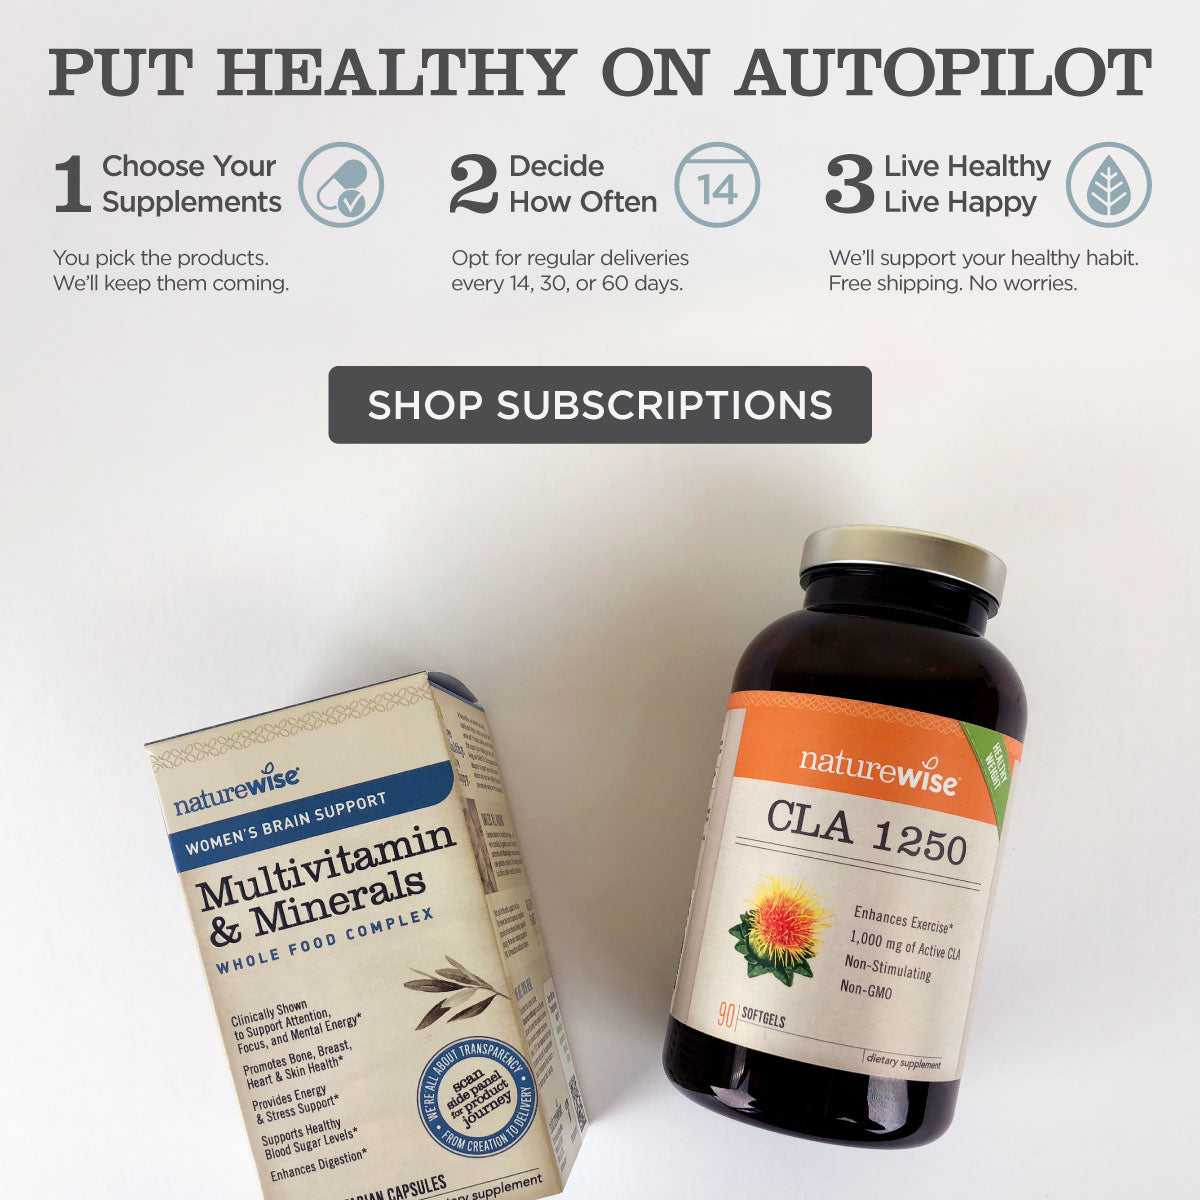 Subscribe & Save 10%. Take a journey to a healthier, happier you.